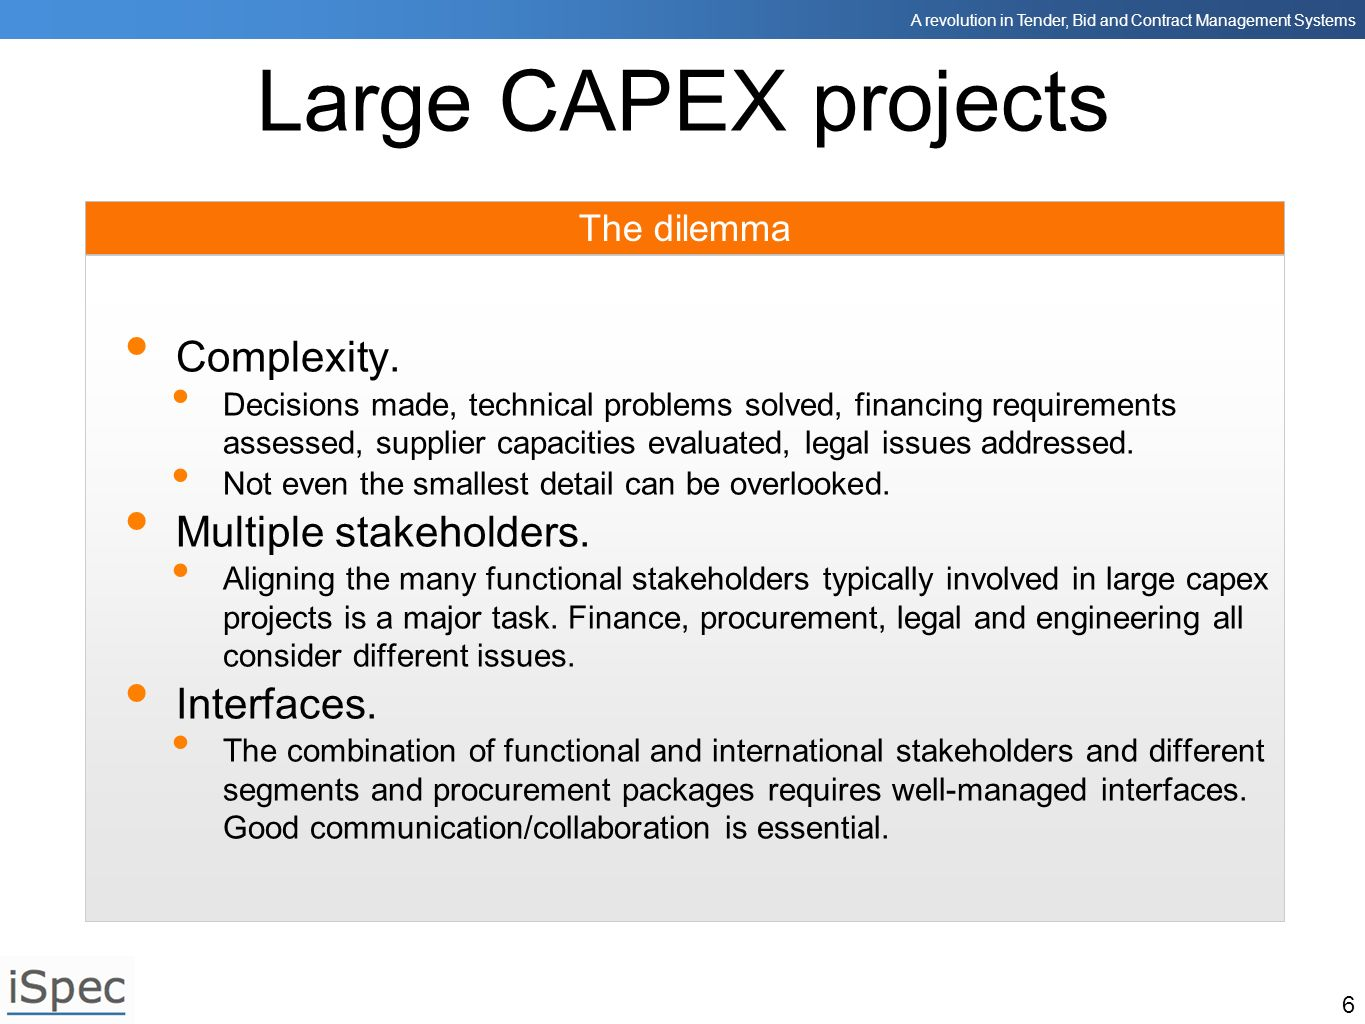 Large CAPEX projects Complexity. Multiple stakeholders. Interfaces.